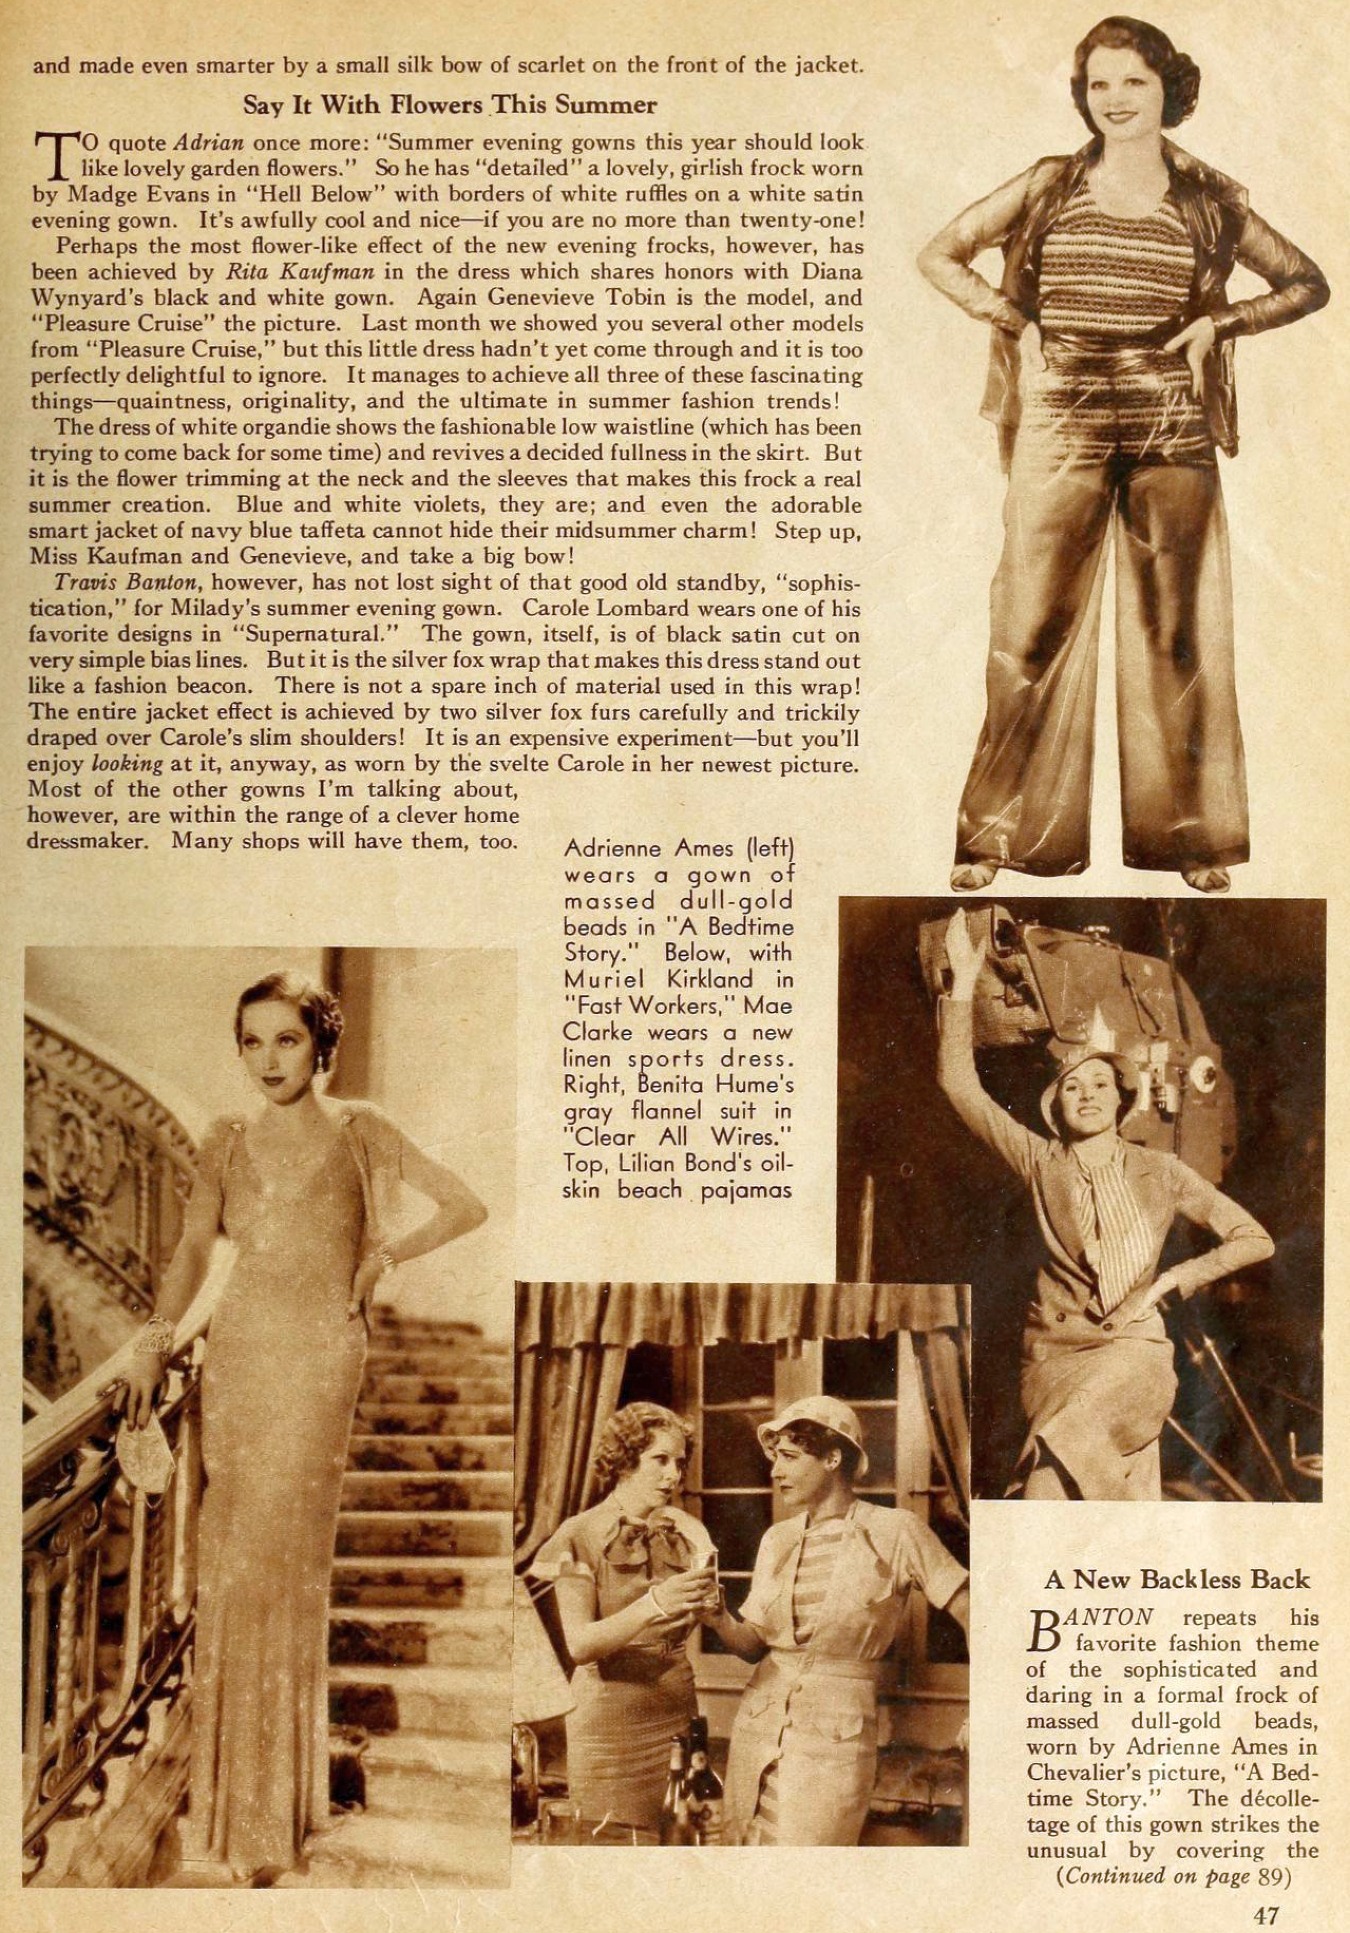 carole lombard motion picture june 1933 fashion tips 03a